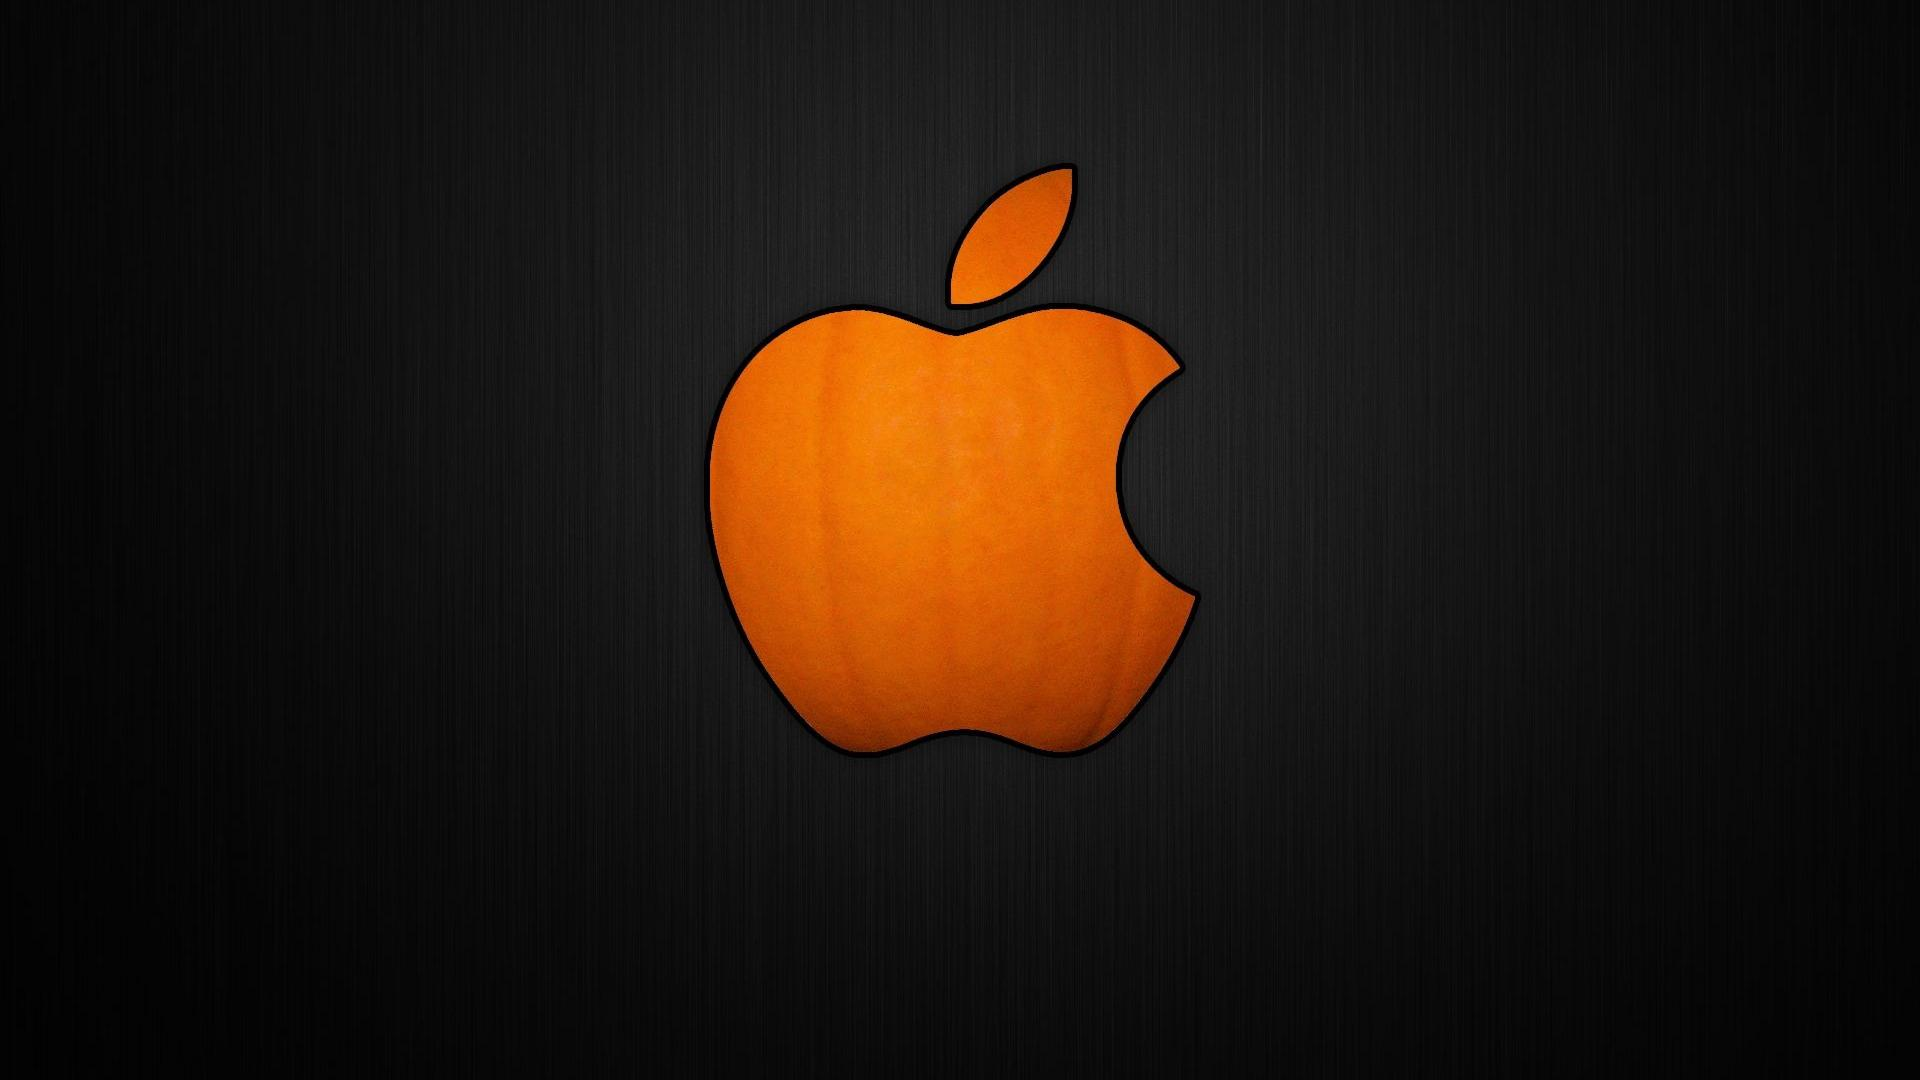 Cool Pictures Apple Logo HD Wallpaper of Logo   hdwallpaper2013com 1920x1080